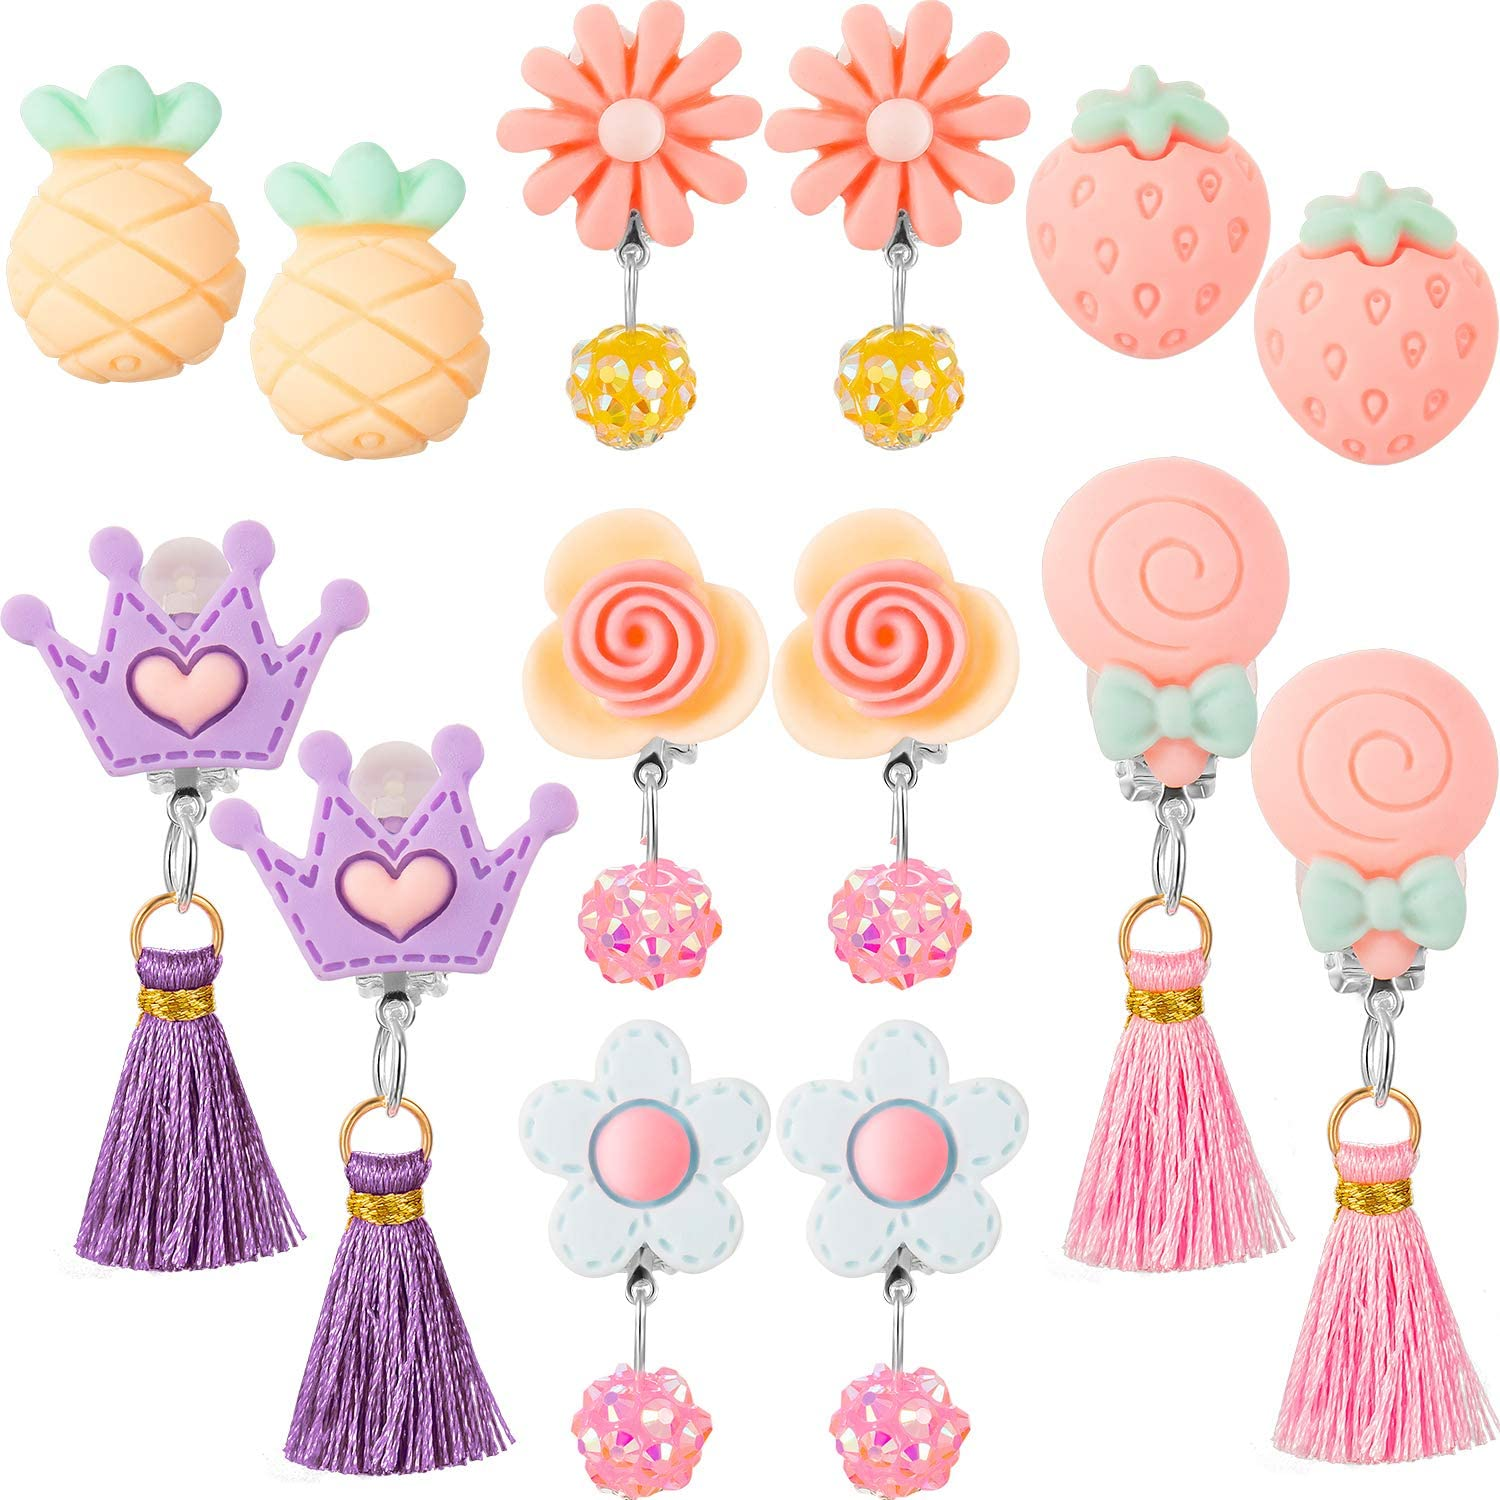 Hicarer 7 Pairs Christmas Crystal Acrylic Clip on Earrings Princess Jewelry Earring and 7 Pairs Earrings Pads in Pink Box (Style 7)